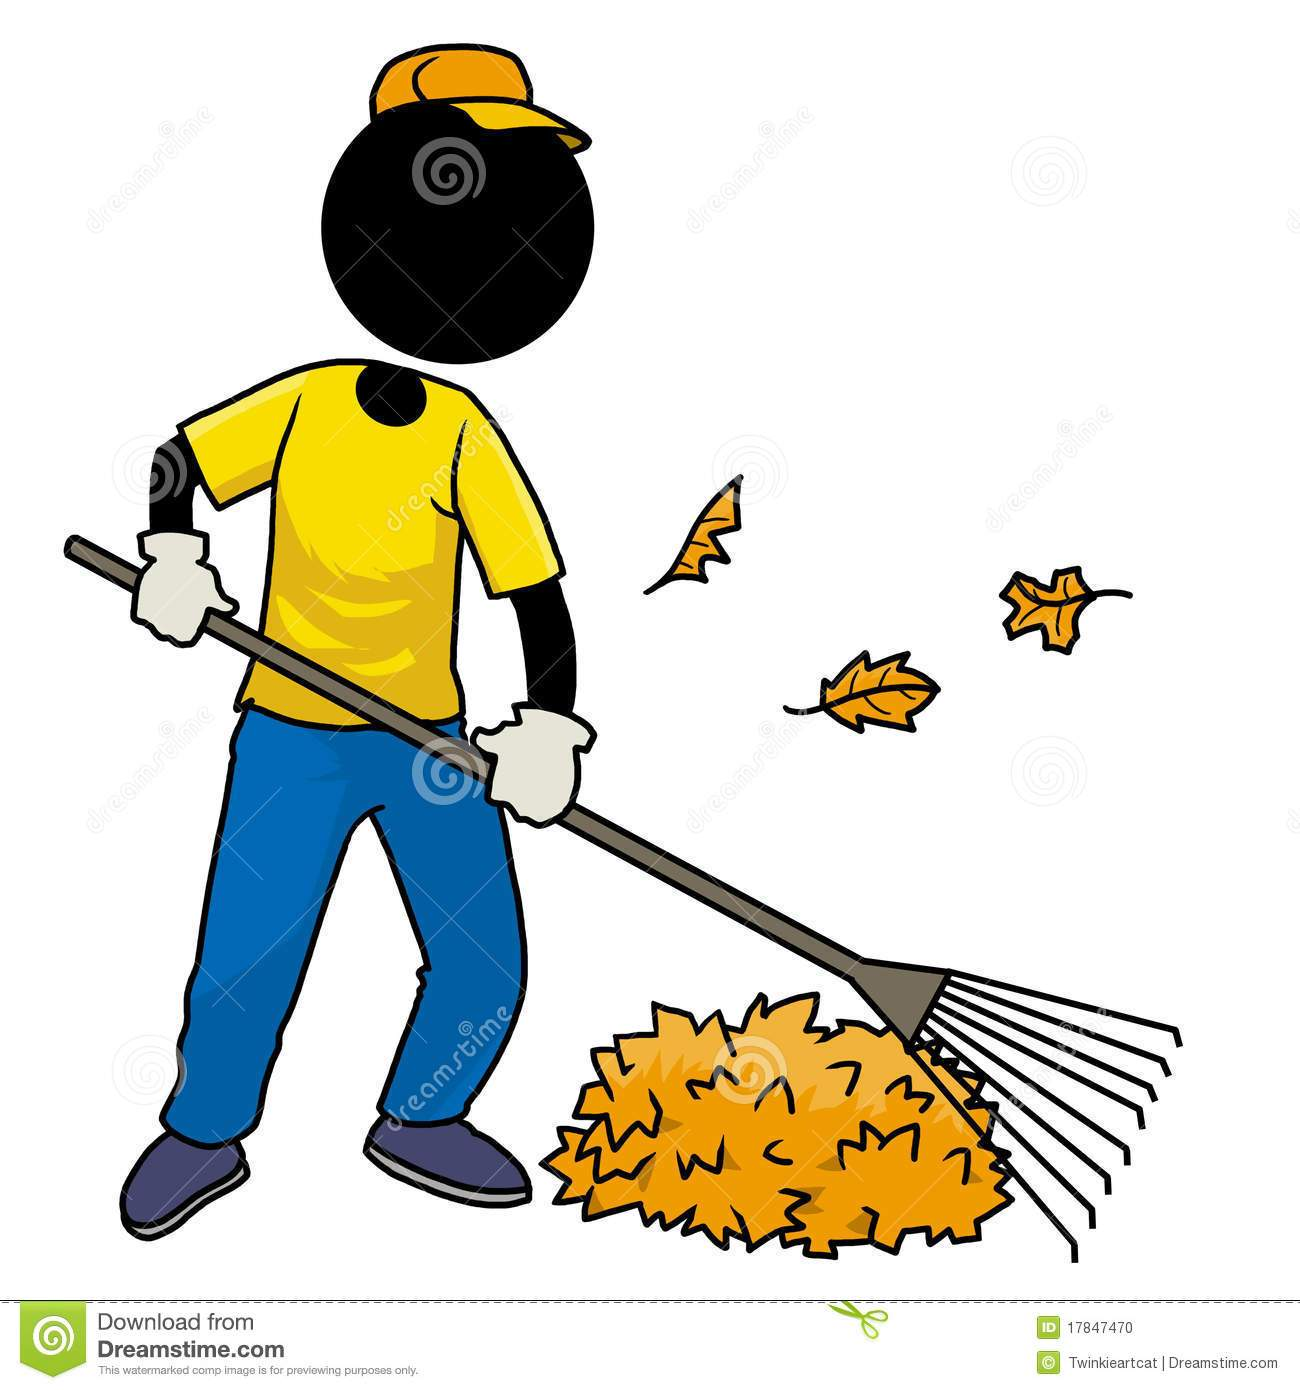 Sweeper clipart image transparent library Sweeper clipart 1 » Clipart Portal image transparent library